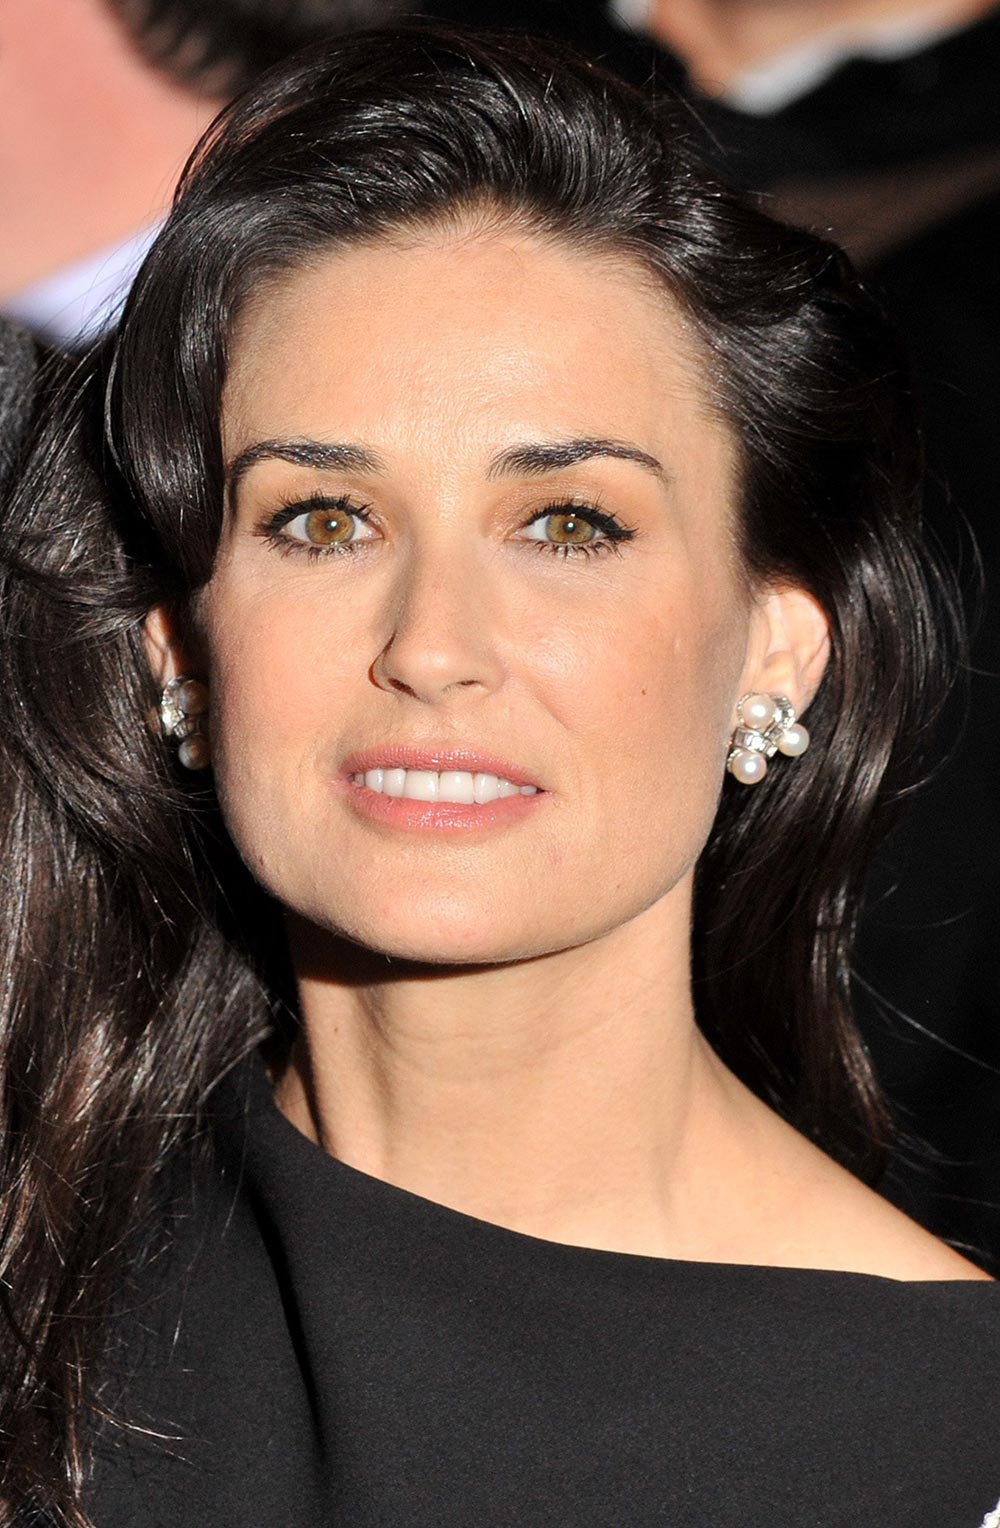 Demi Moore sort-of denies she's had plastic surgery